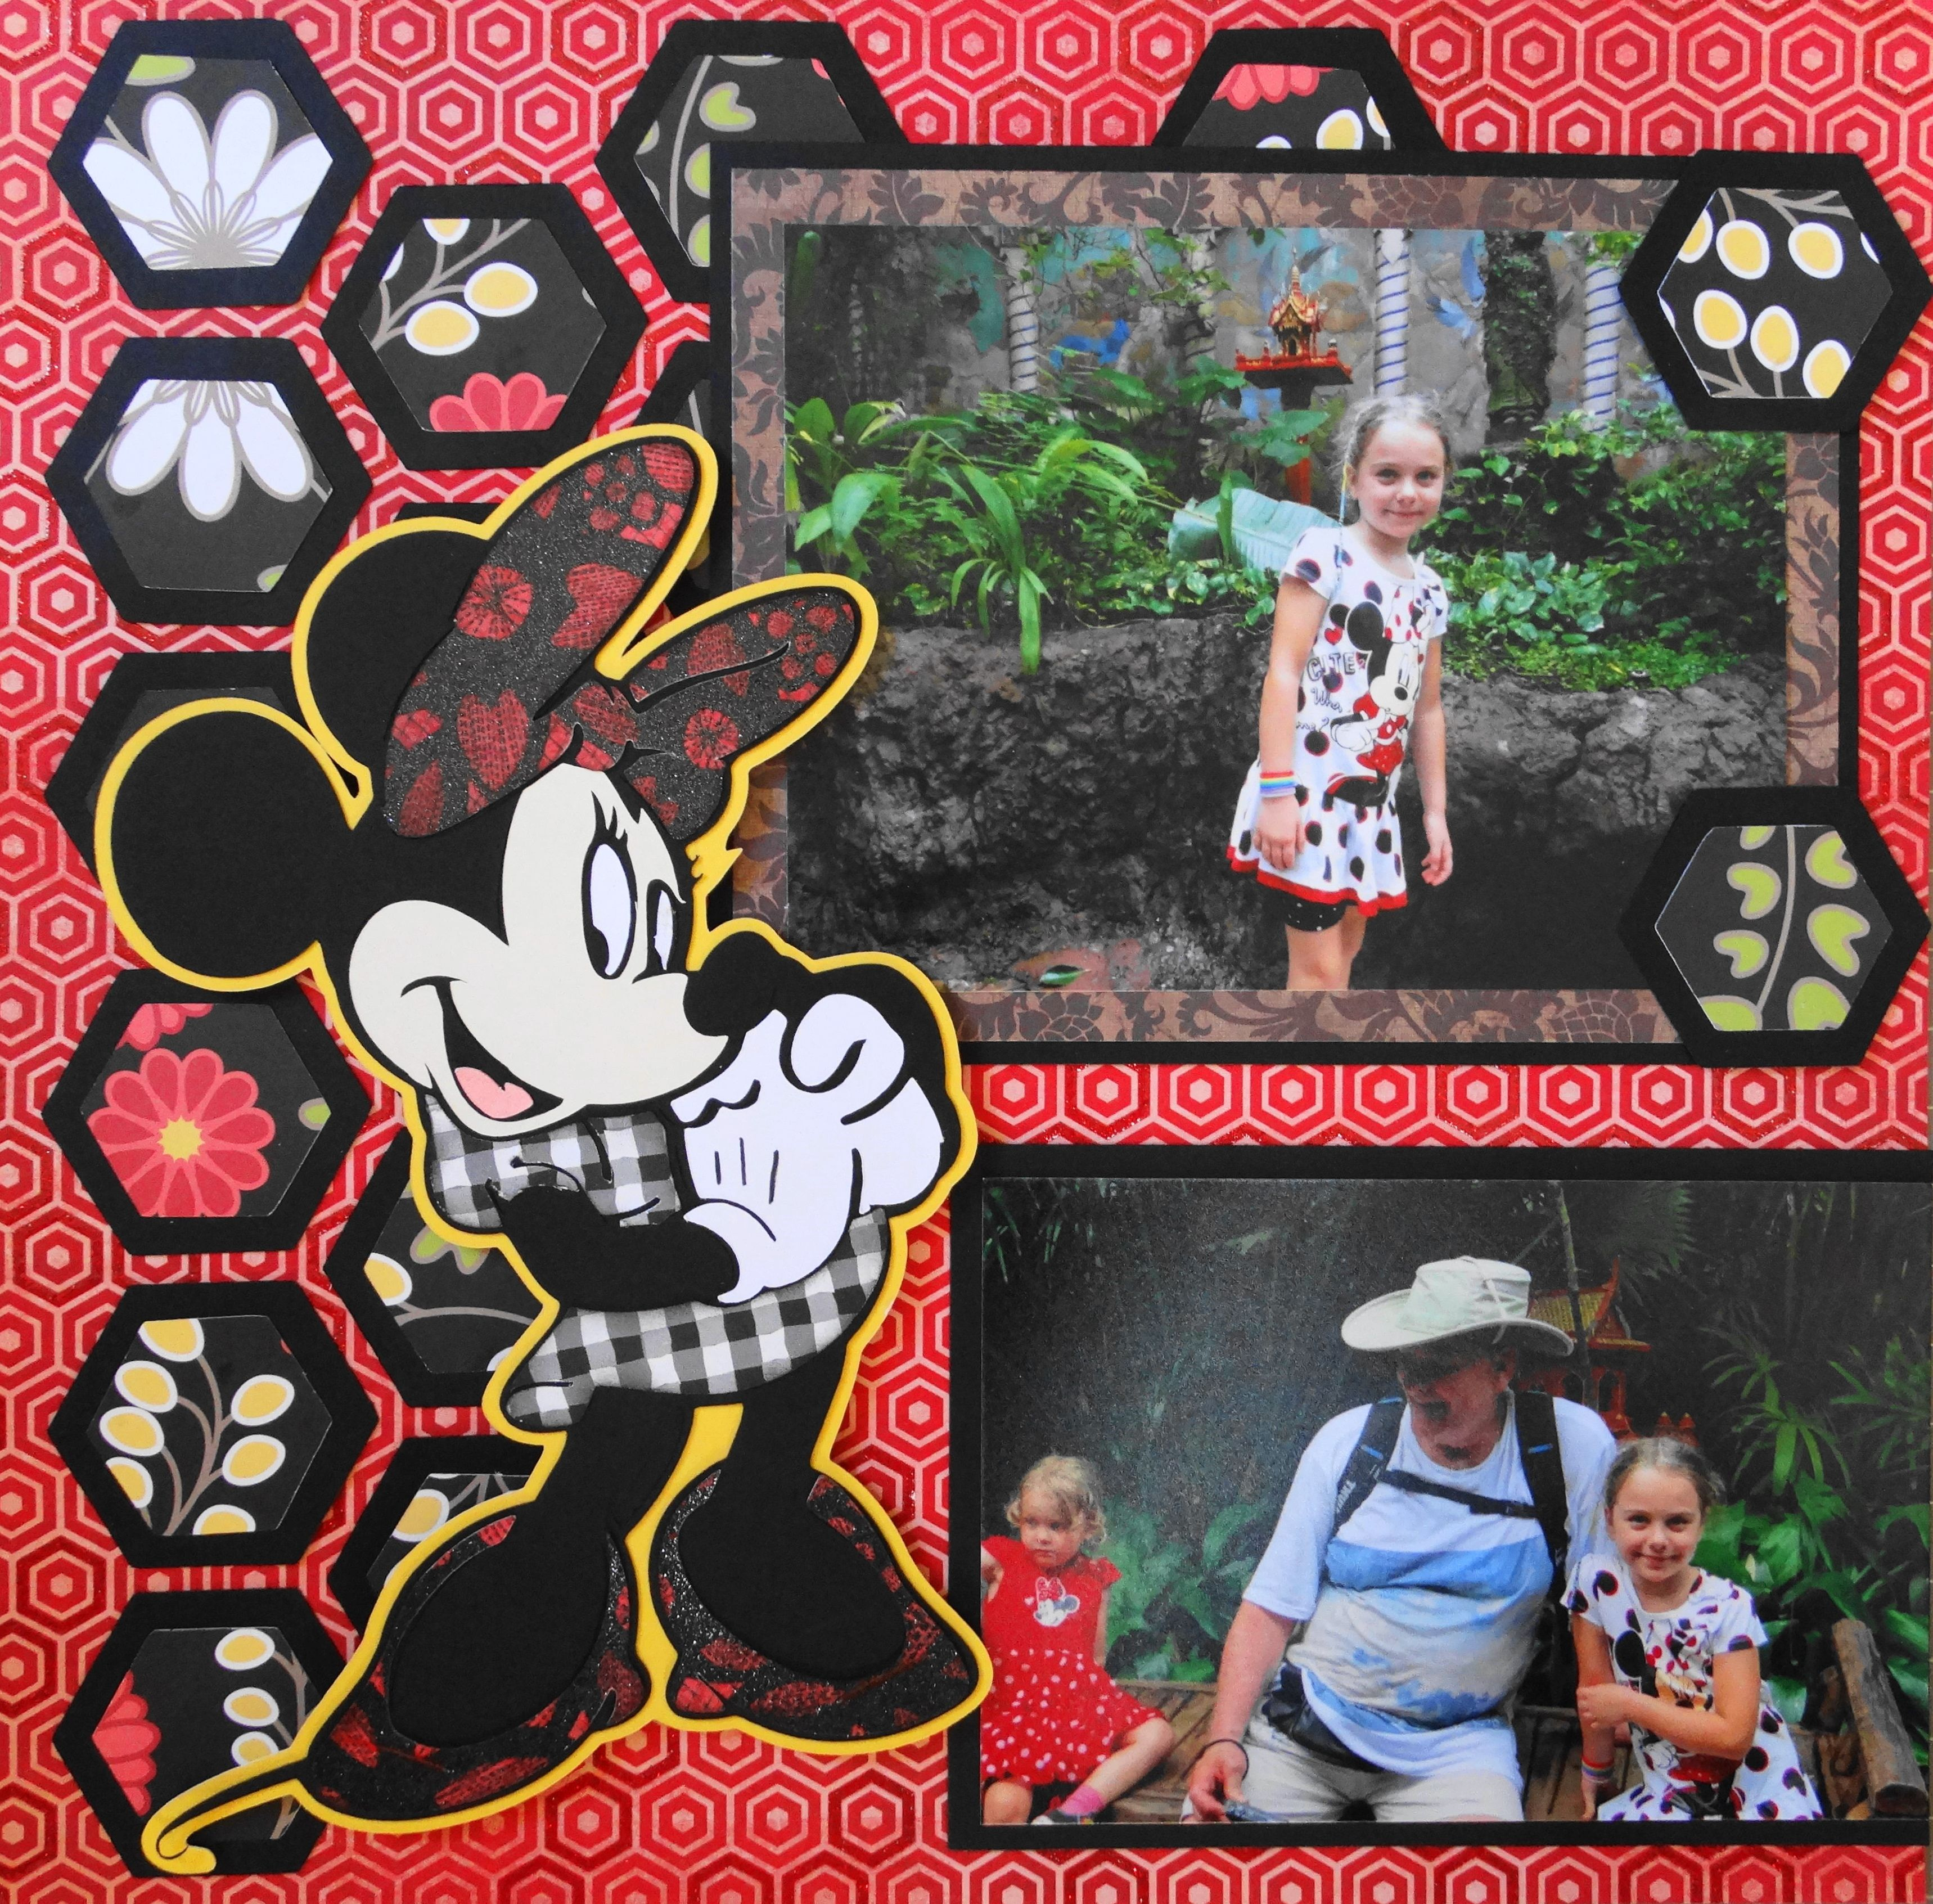 Minnie Mouse Scrapbook Page For Animal Kingdom A Layout Idea Of The